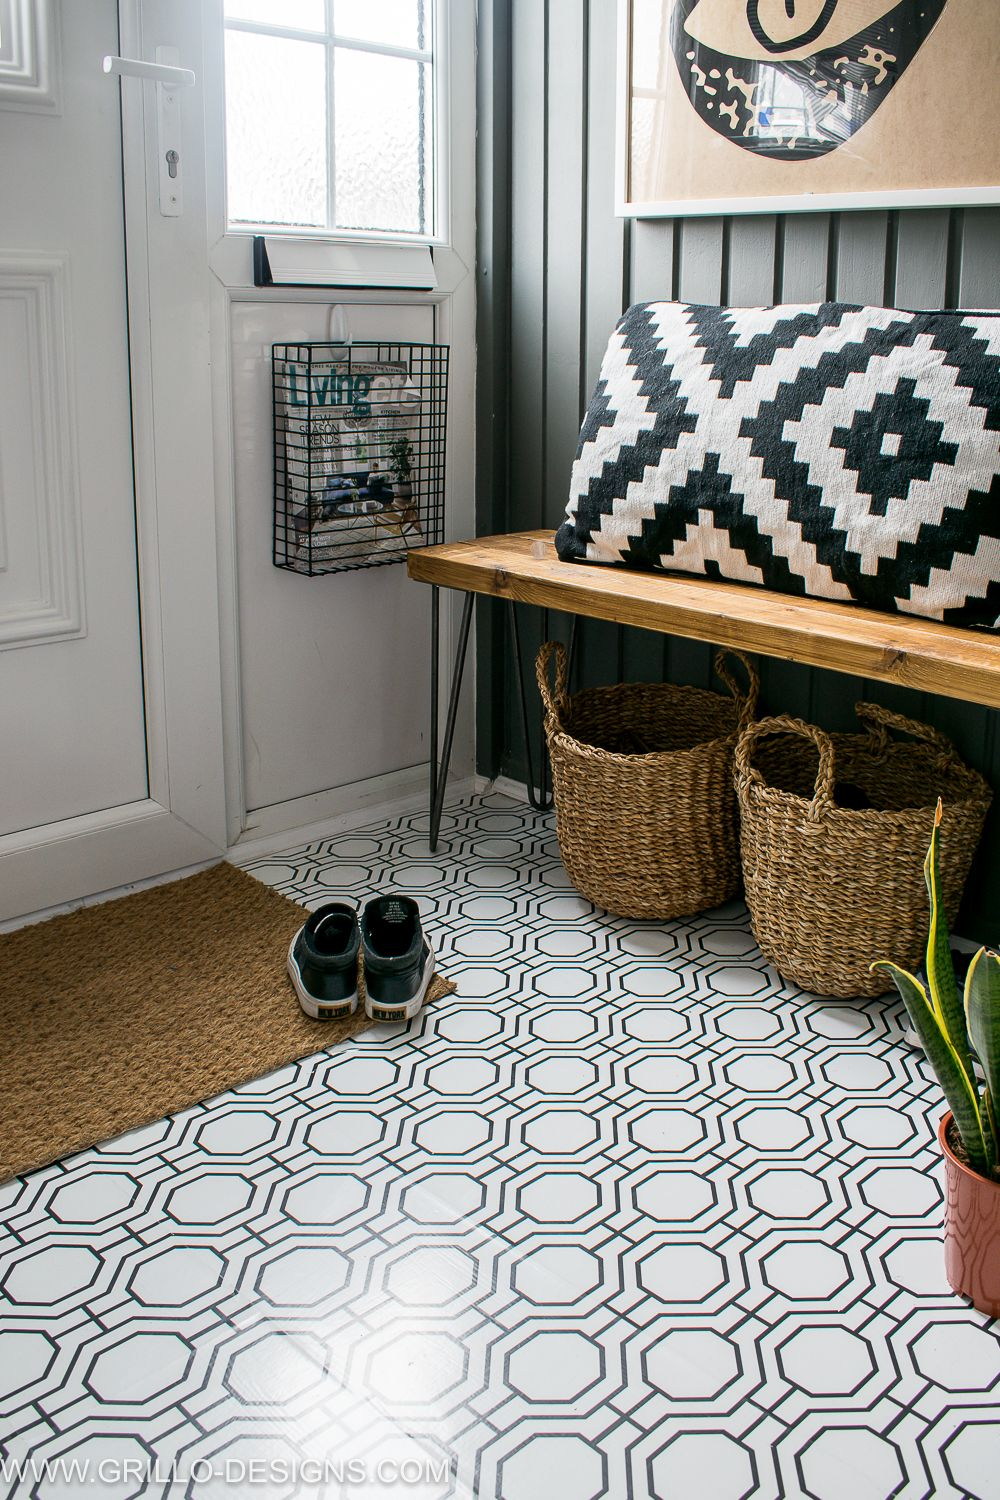 Wallpaper a floor for with modern contact paper grillo designs